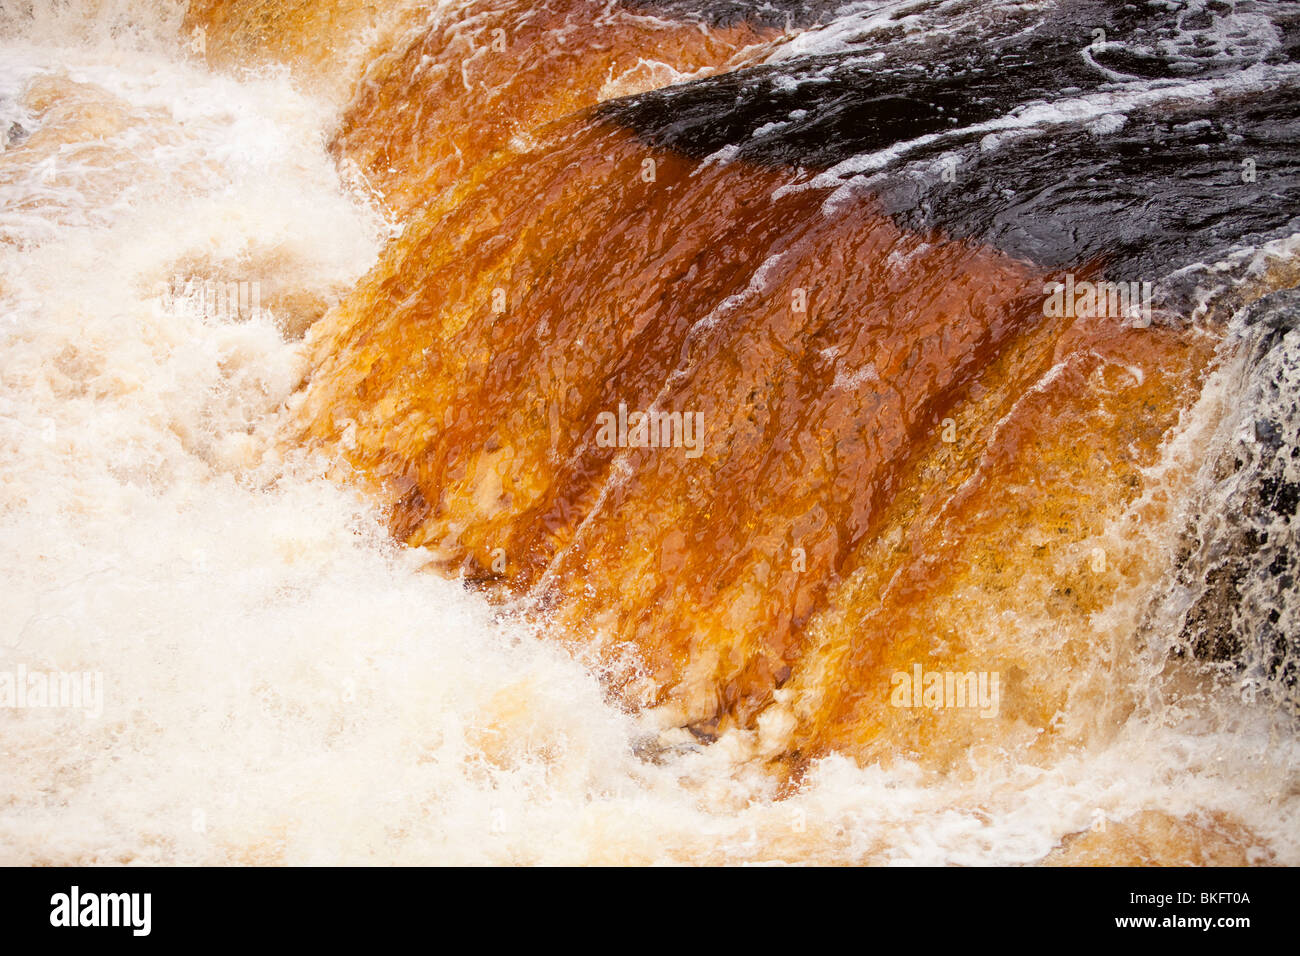 Aysgarth Falls at Aysgarth in the Yorkshire Dales National Park, UK with the water stained by peat - Stock Image